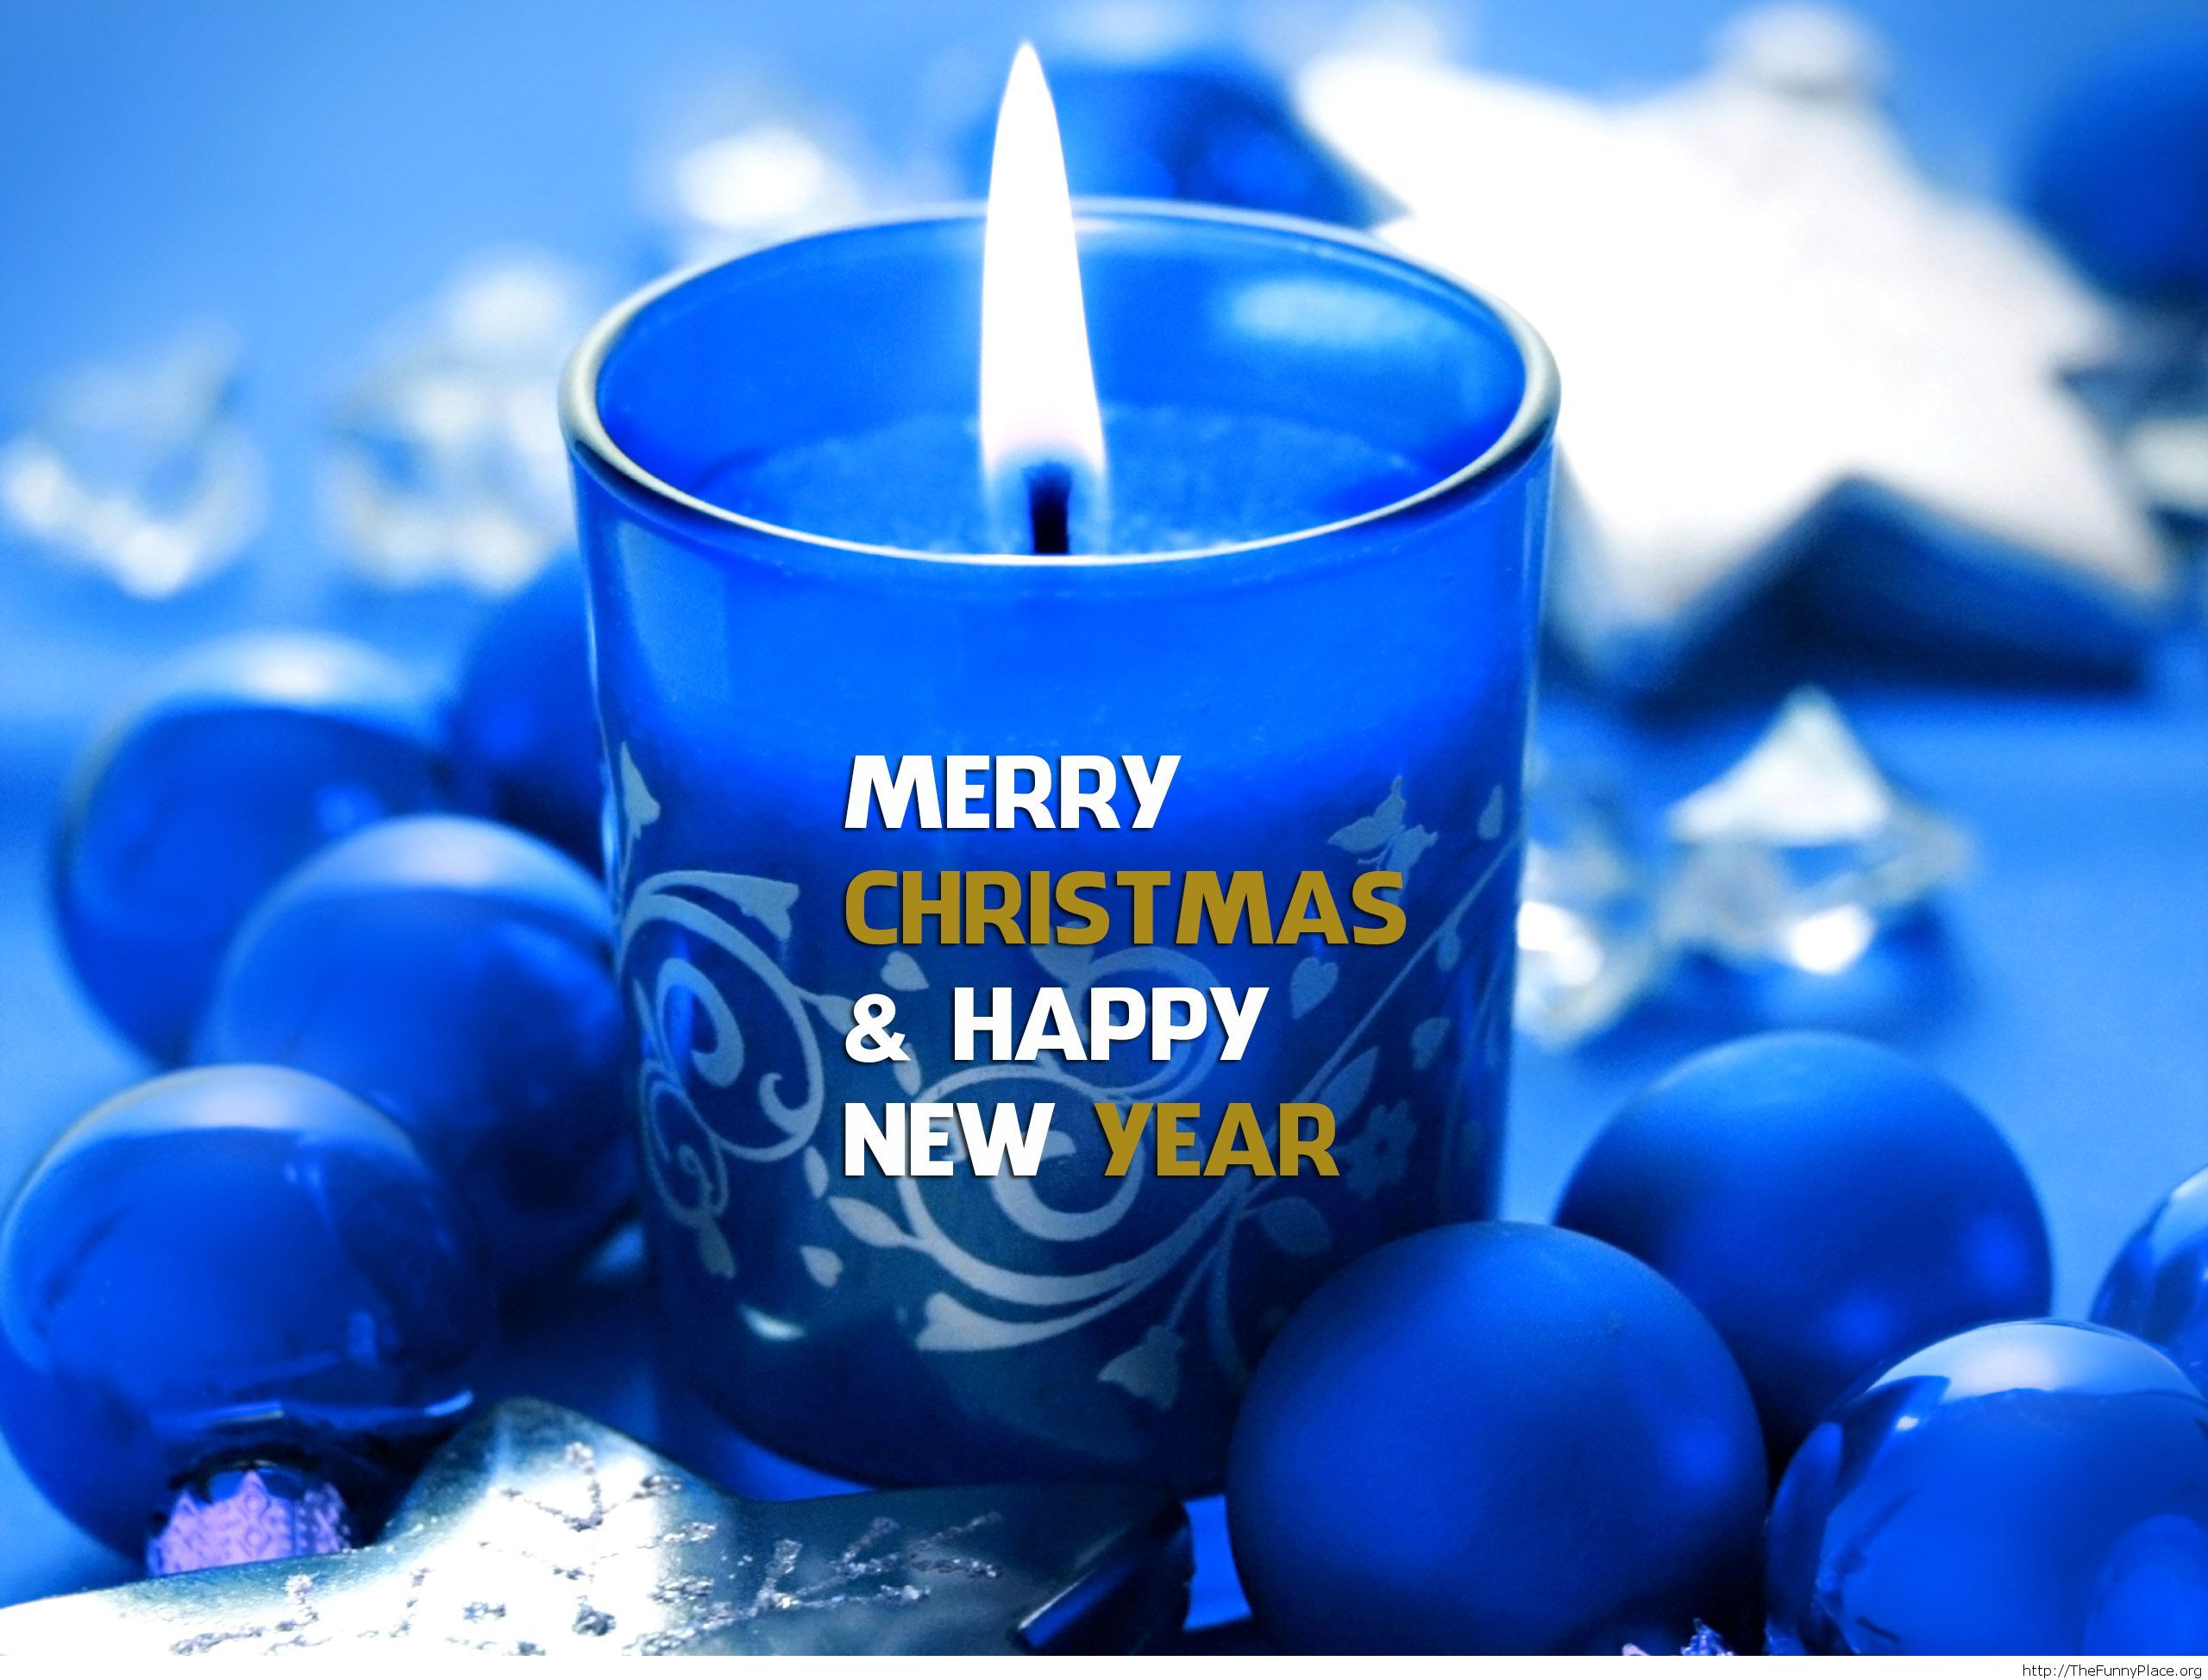 Awesome blue greeting card for the Winter Holidays